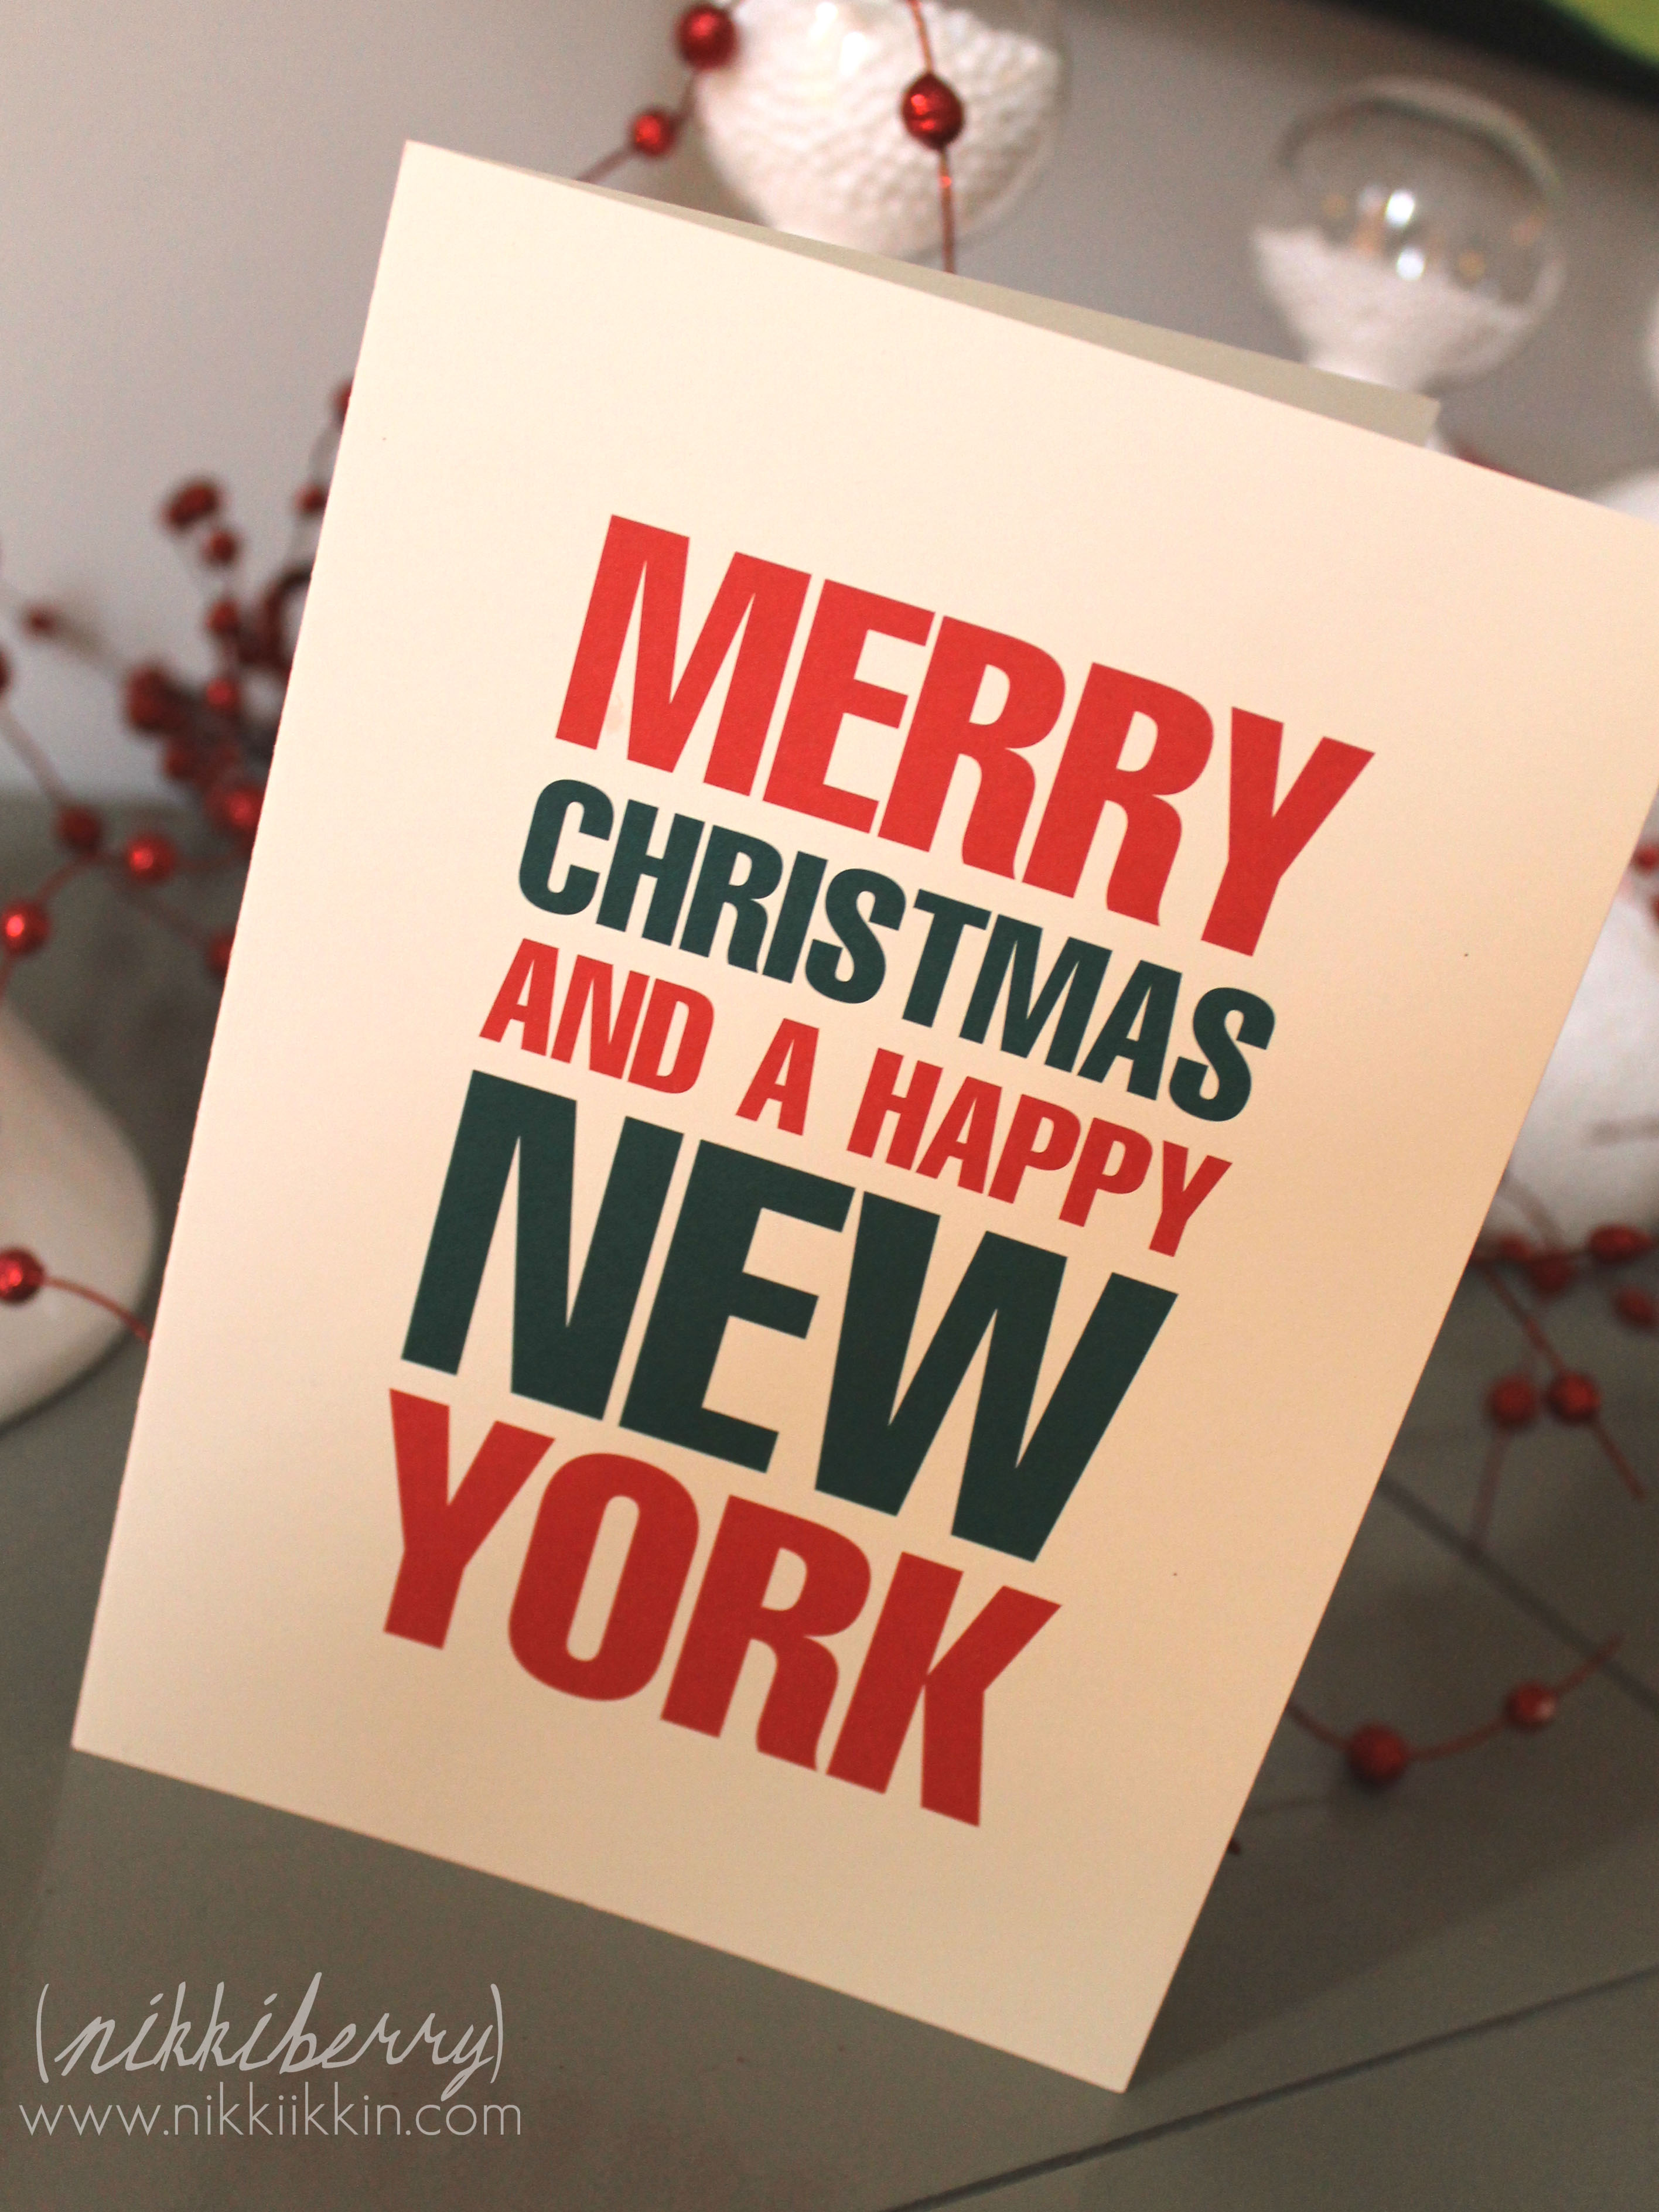 Merry Christmas And A Happy New York